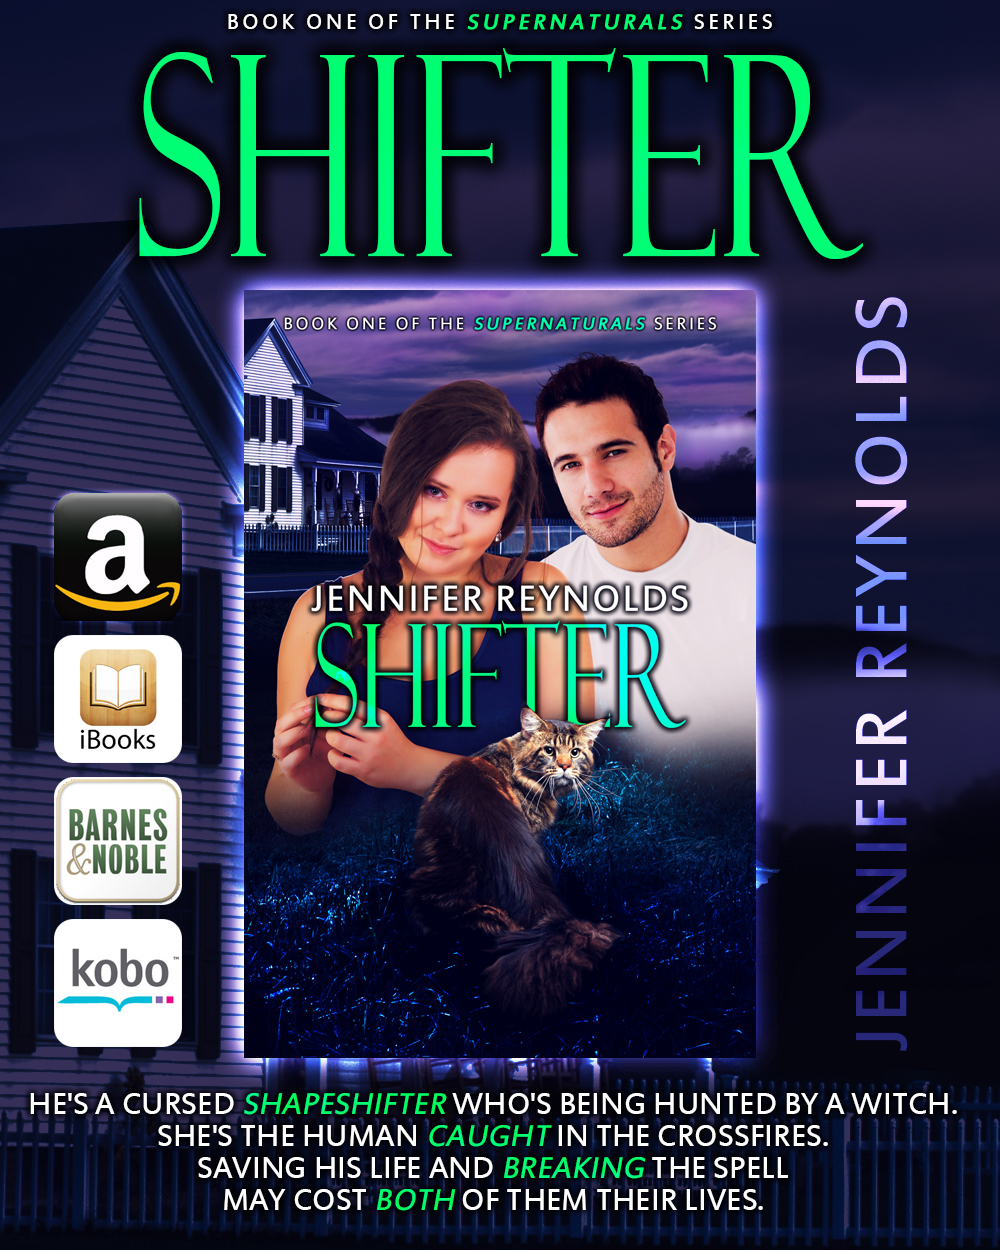 ***Shifter, Supernaturals Book 1, is a BBW paranormal/shifter romance available for $2.49.   Shifter is also available on Audio @ Audible.com*** Read by Margi Stephens   Abby is a plus size woman struggling to learn to love herself despite the damage her ex did to her mentally and psychically. For reasons unknown to her, she wakes one morning with an urge to adopt another cat. What she doesn't know is that the cat she picks is actually Dimitri Sullivan, the son of a local shapeshifter pack's alpha who was cursed by a powerful witch into the form of a common house cat after he had a one-nightstand with her. As the months pass, Dimitri finds himself falling in love with his new owner, but there is just one problem, she doesn't know that he is her cat and she is currently dating his brother. When the witch that cursed him discovers that by falling for Abby, he is weakening her curse, she sets out to stop this from happening by any means necessary. SHIFTER is a full-length, stand-alone eBook.    Amazon        Smashwords         Nook         iTunes         Kobo         Overdrive         Audible